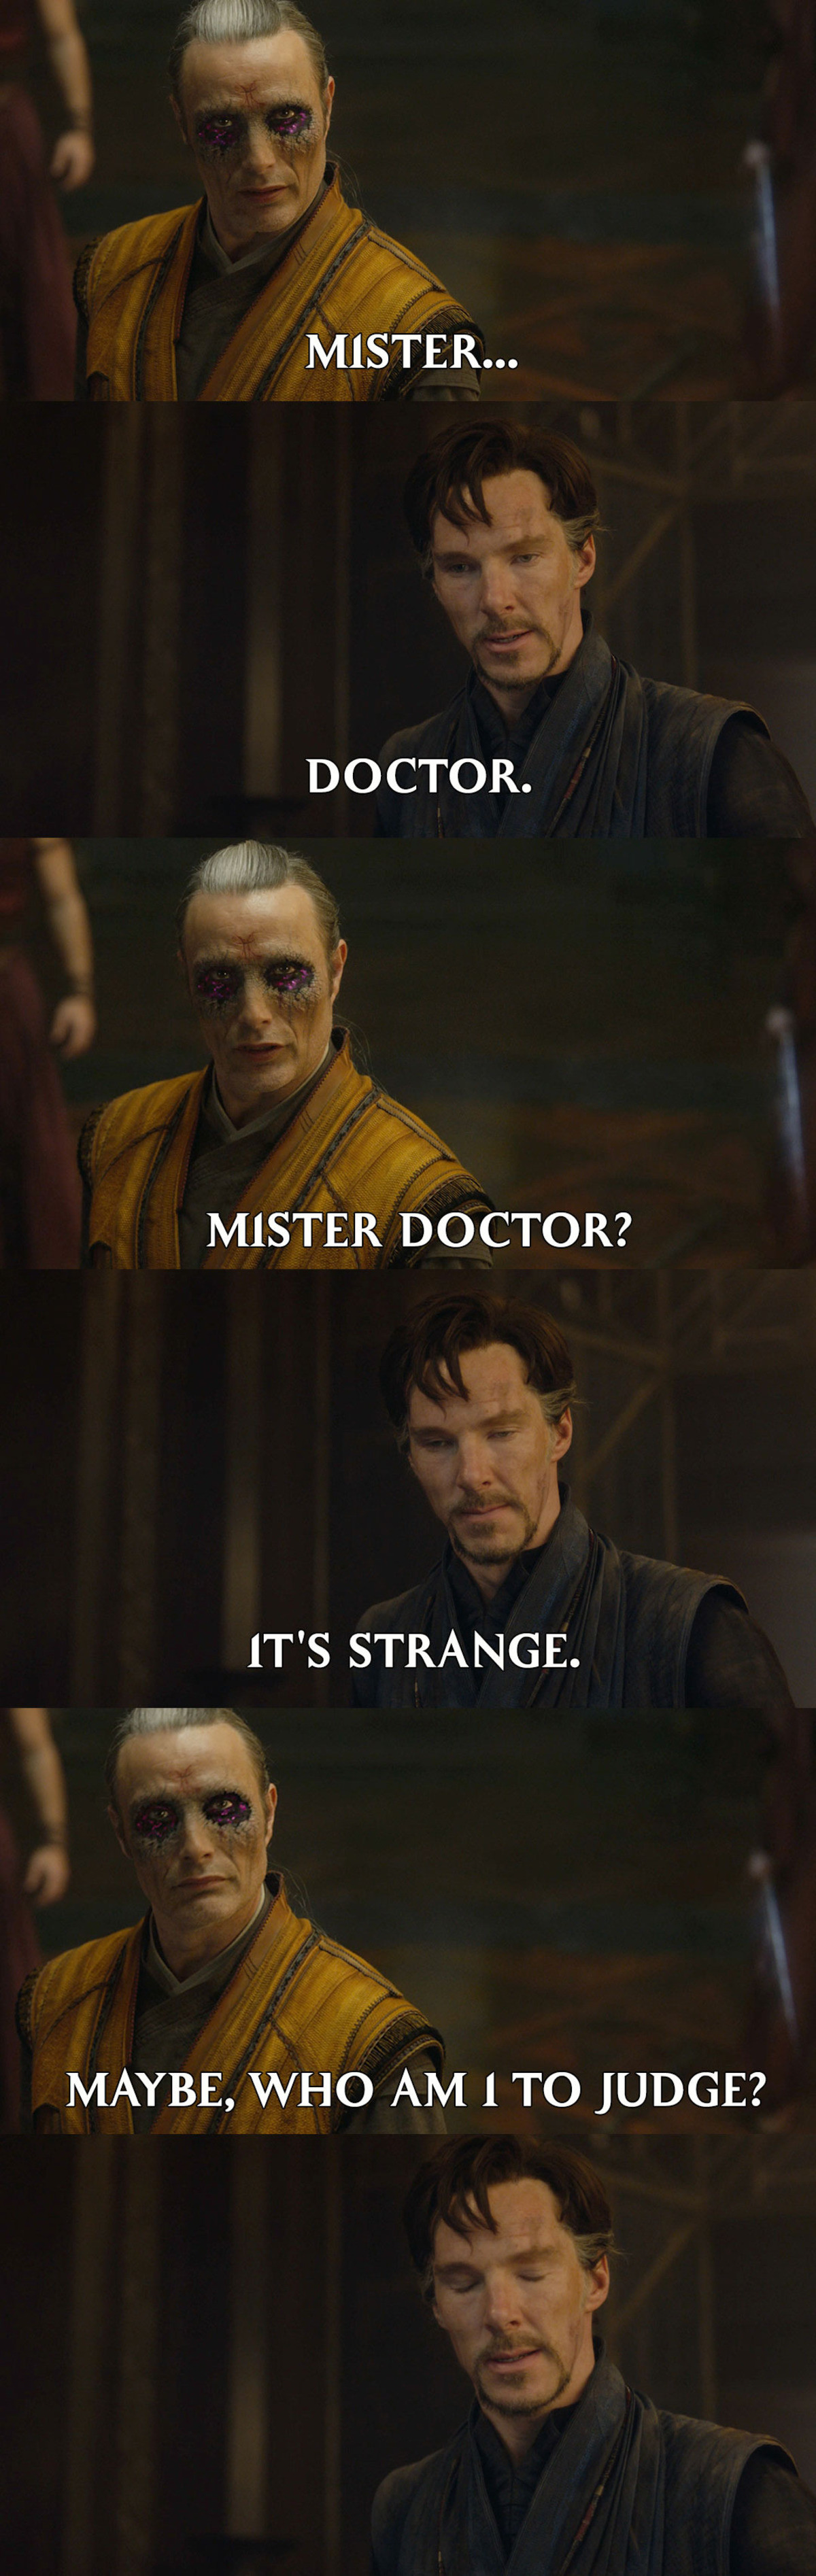 one of the best marvel movies i've watched. . MISTER... DOCTOR. MISTER DOCTOR? IT' S STRANGE. MAYBE, WHO AM I TO JUDGE?. Dormammu I've come to bargain